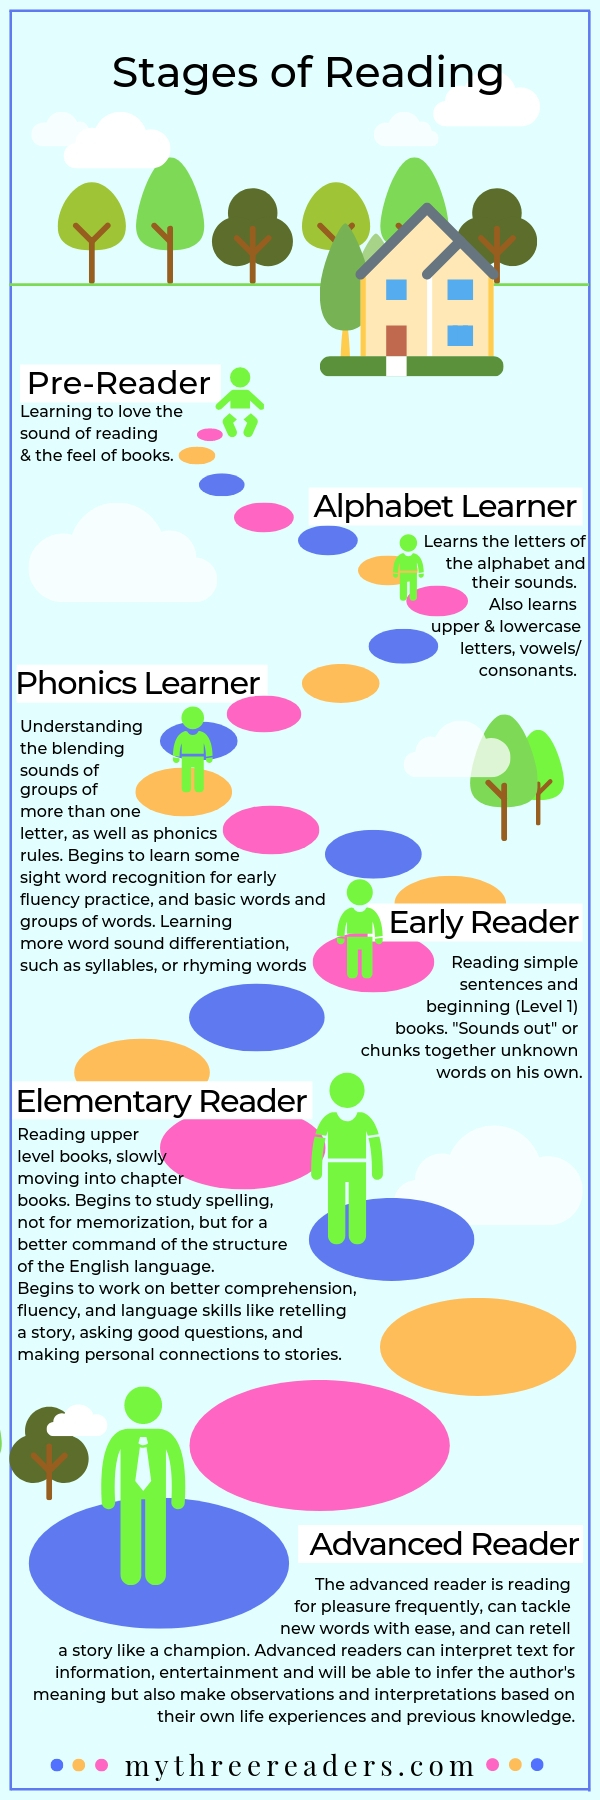 Stages of Learning to Read